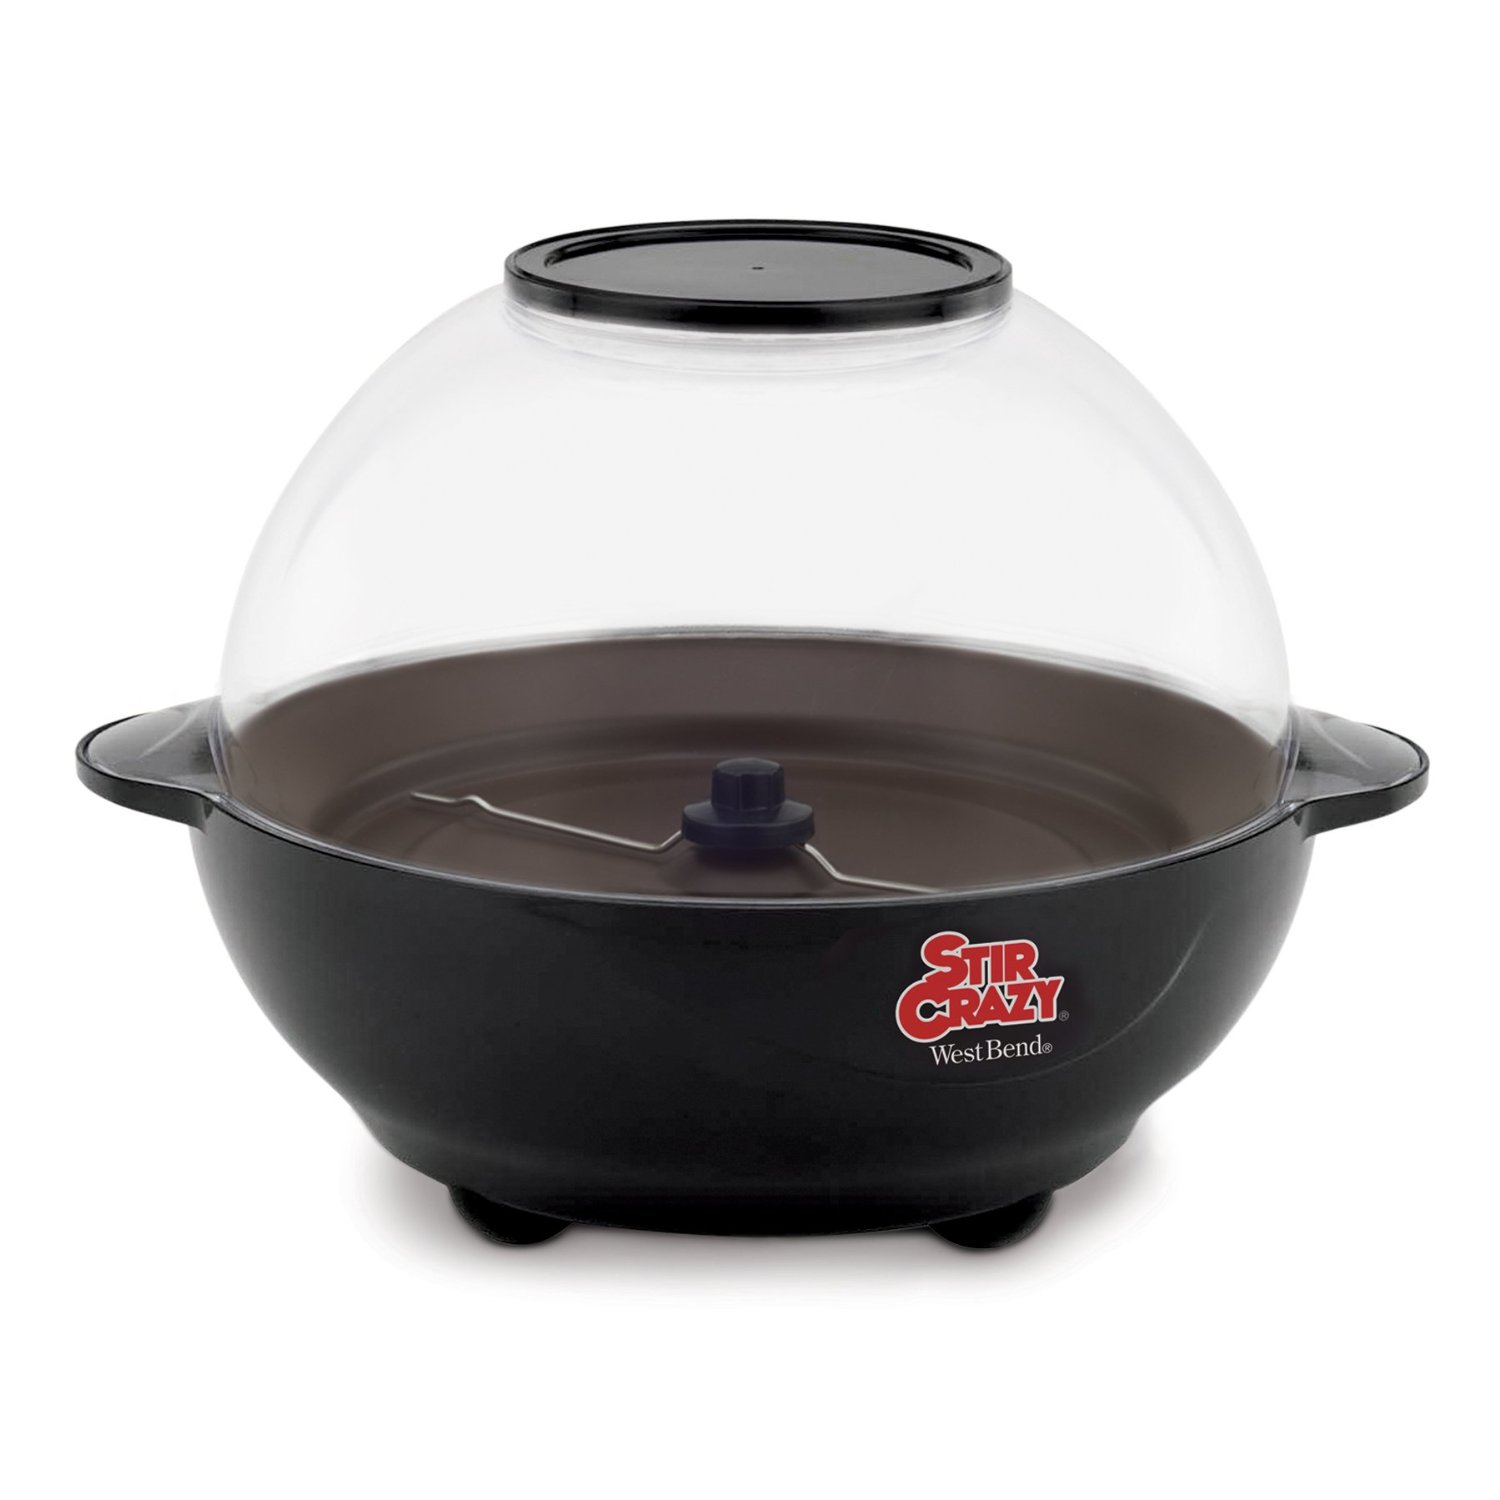 West Bend Stir Crazy Popcorn Popper – Motorized Stirring Rod, Non-Stick, Glass Cover